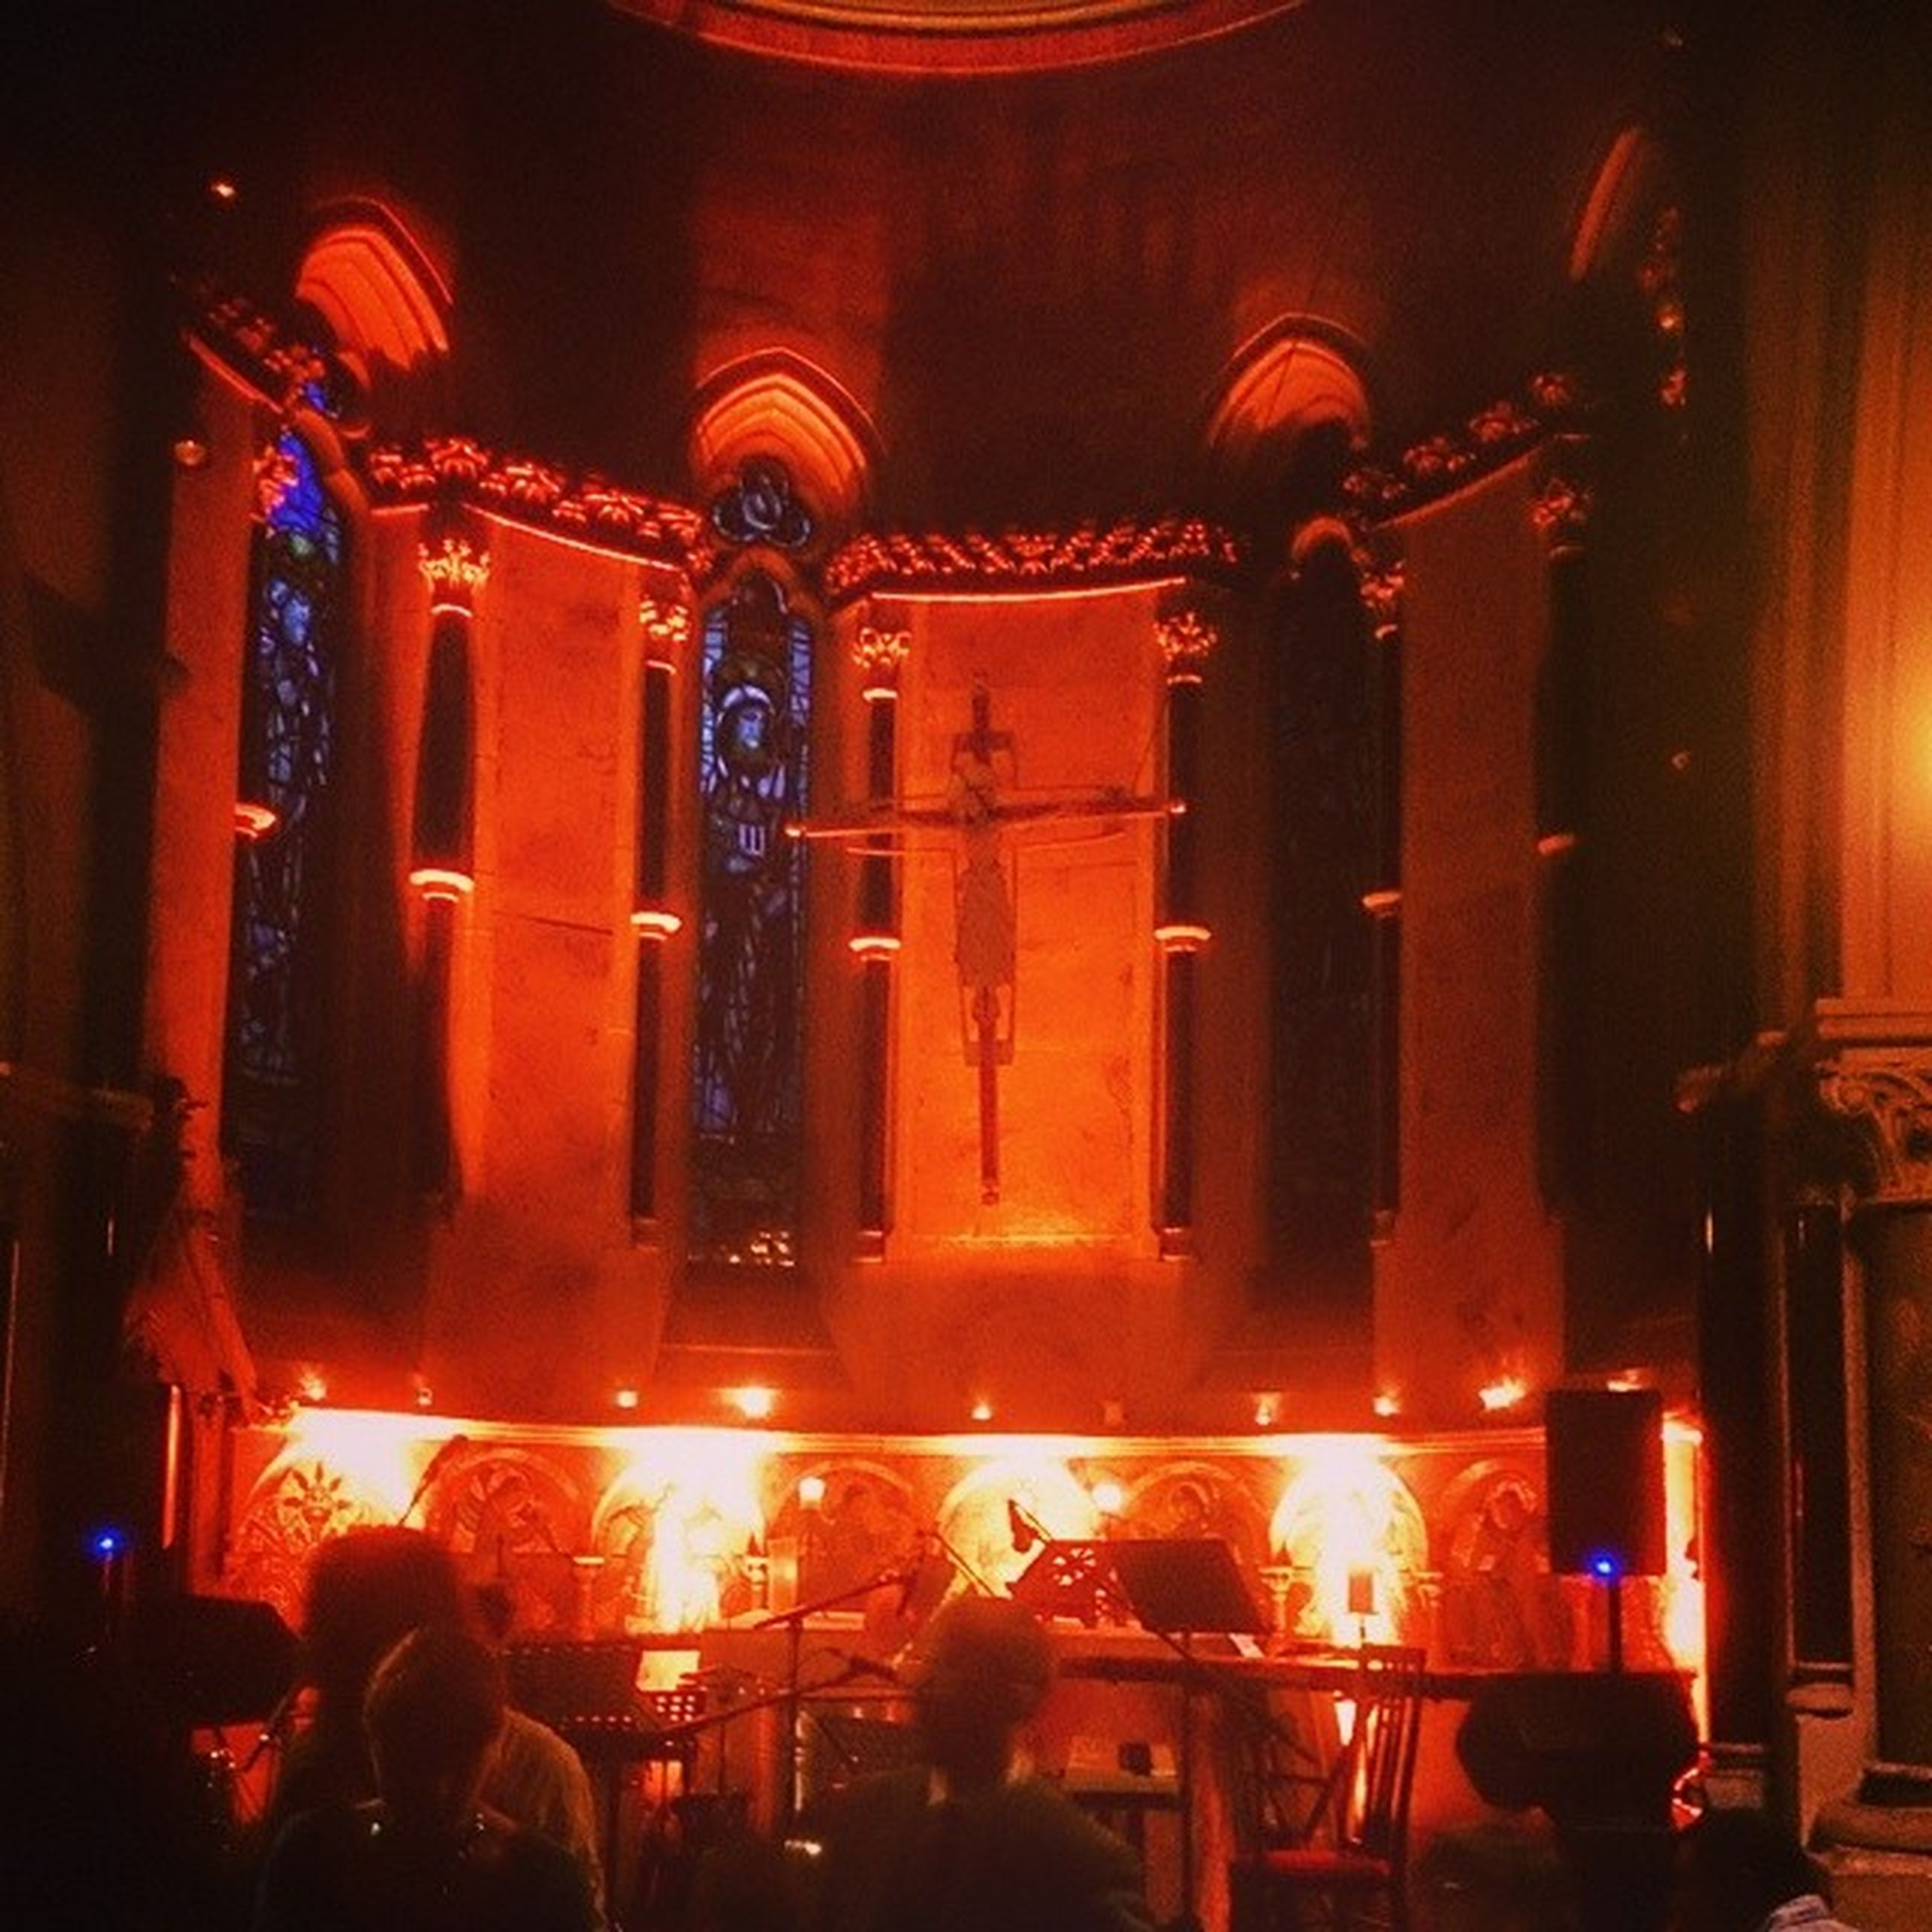 illuminated, indoors, night, lighting equipment, men, large group of people, light - natural phenomenon, arts culture and entertainment, built structure, architecture, lifestyles, person, dark, glowing, leisure activity, religion, church, place of worship, spirituality